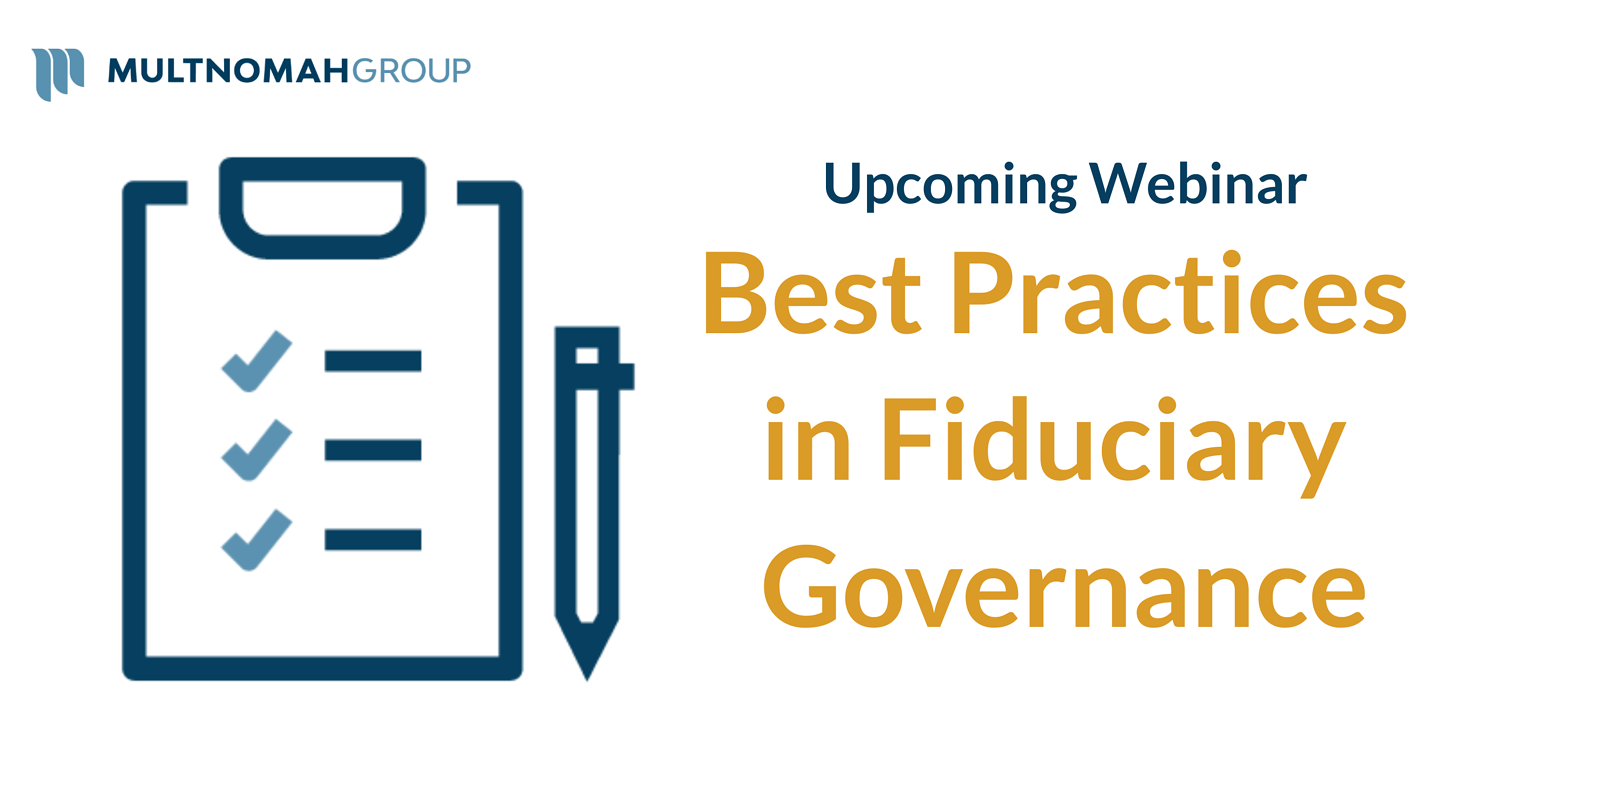 Upcoming Webinar: Best Practices in Fiduciary Governance